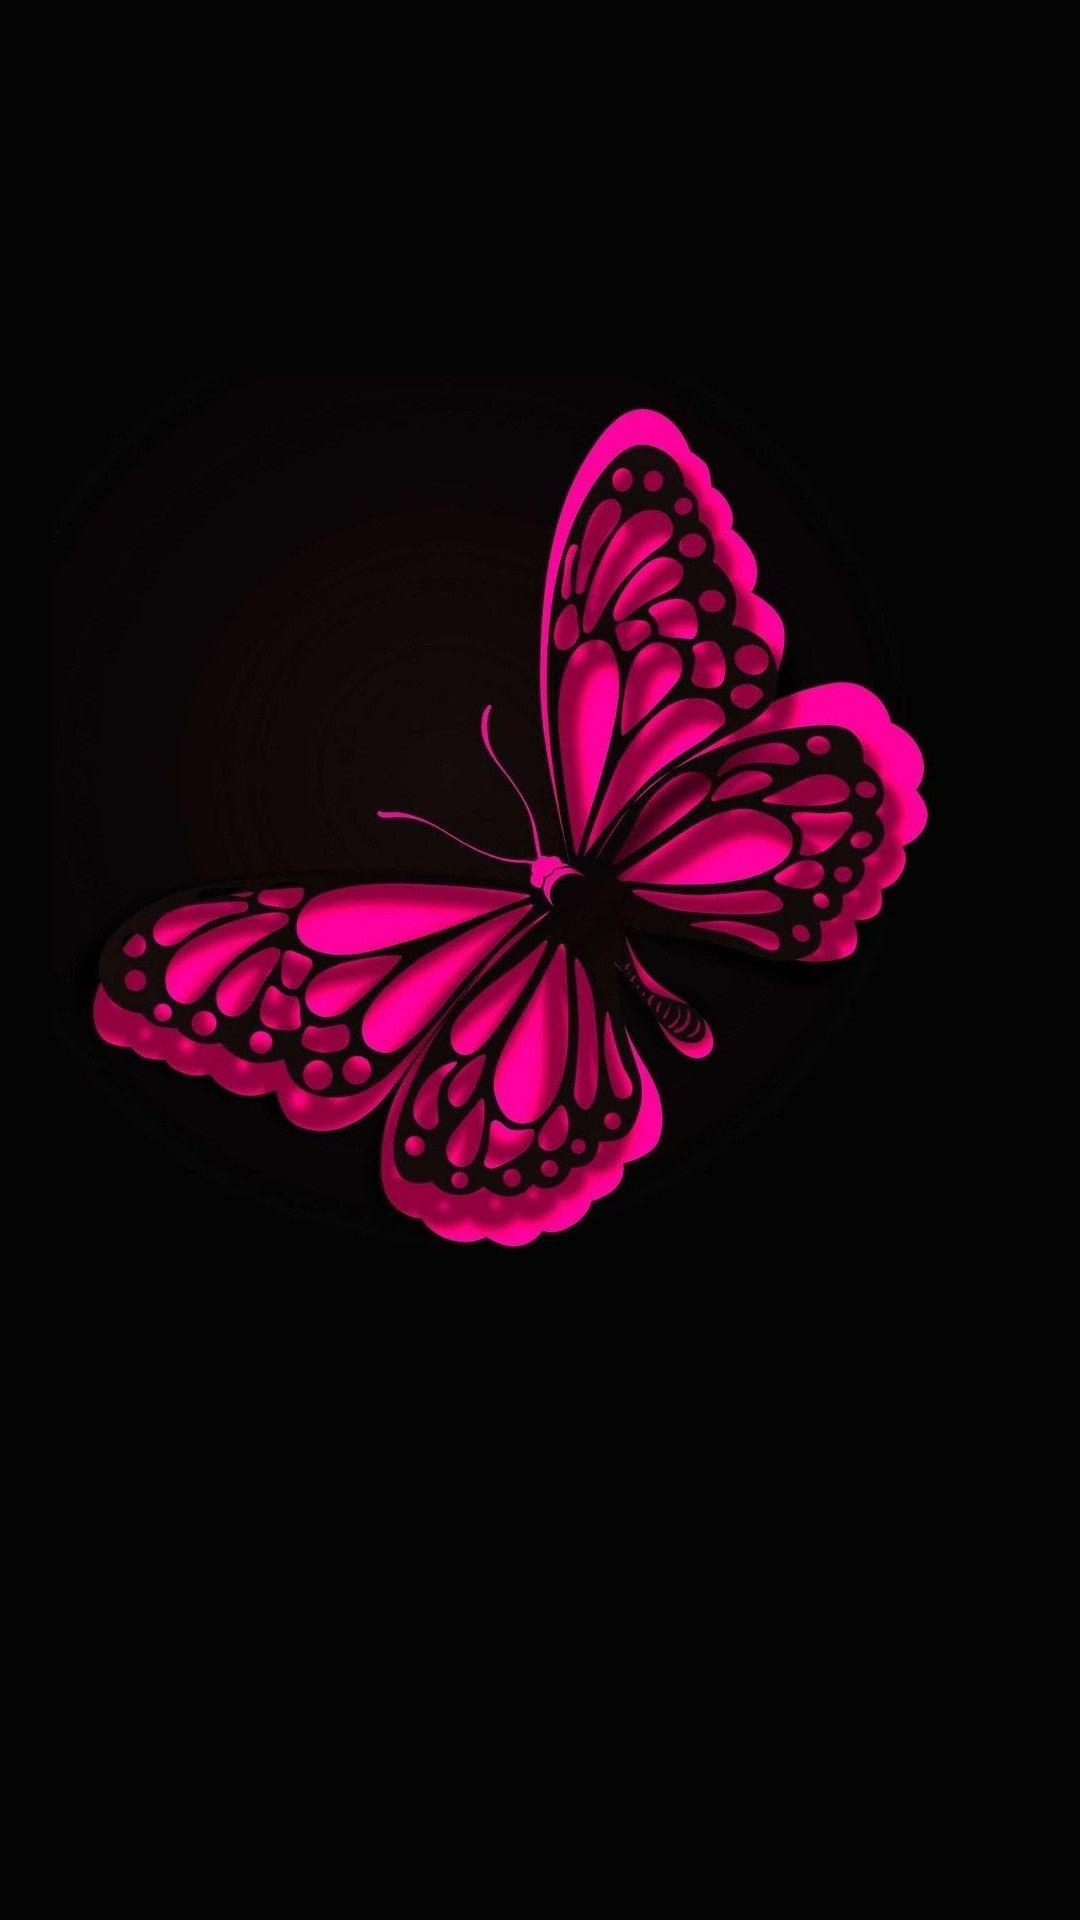 Pink Butterfly Phone Wallpapers Top Free Pink Butterfly Phone Backgrounds Wallpaperaccess